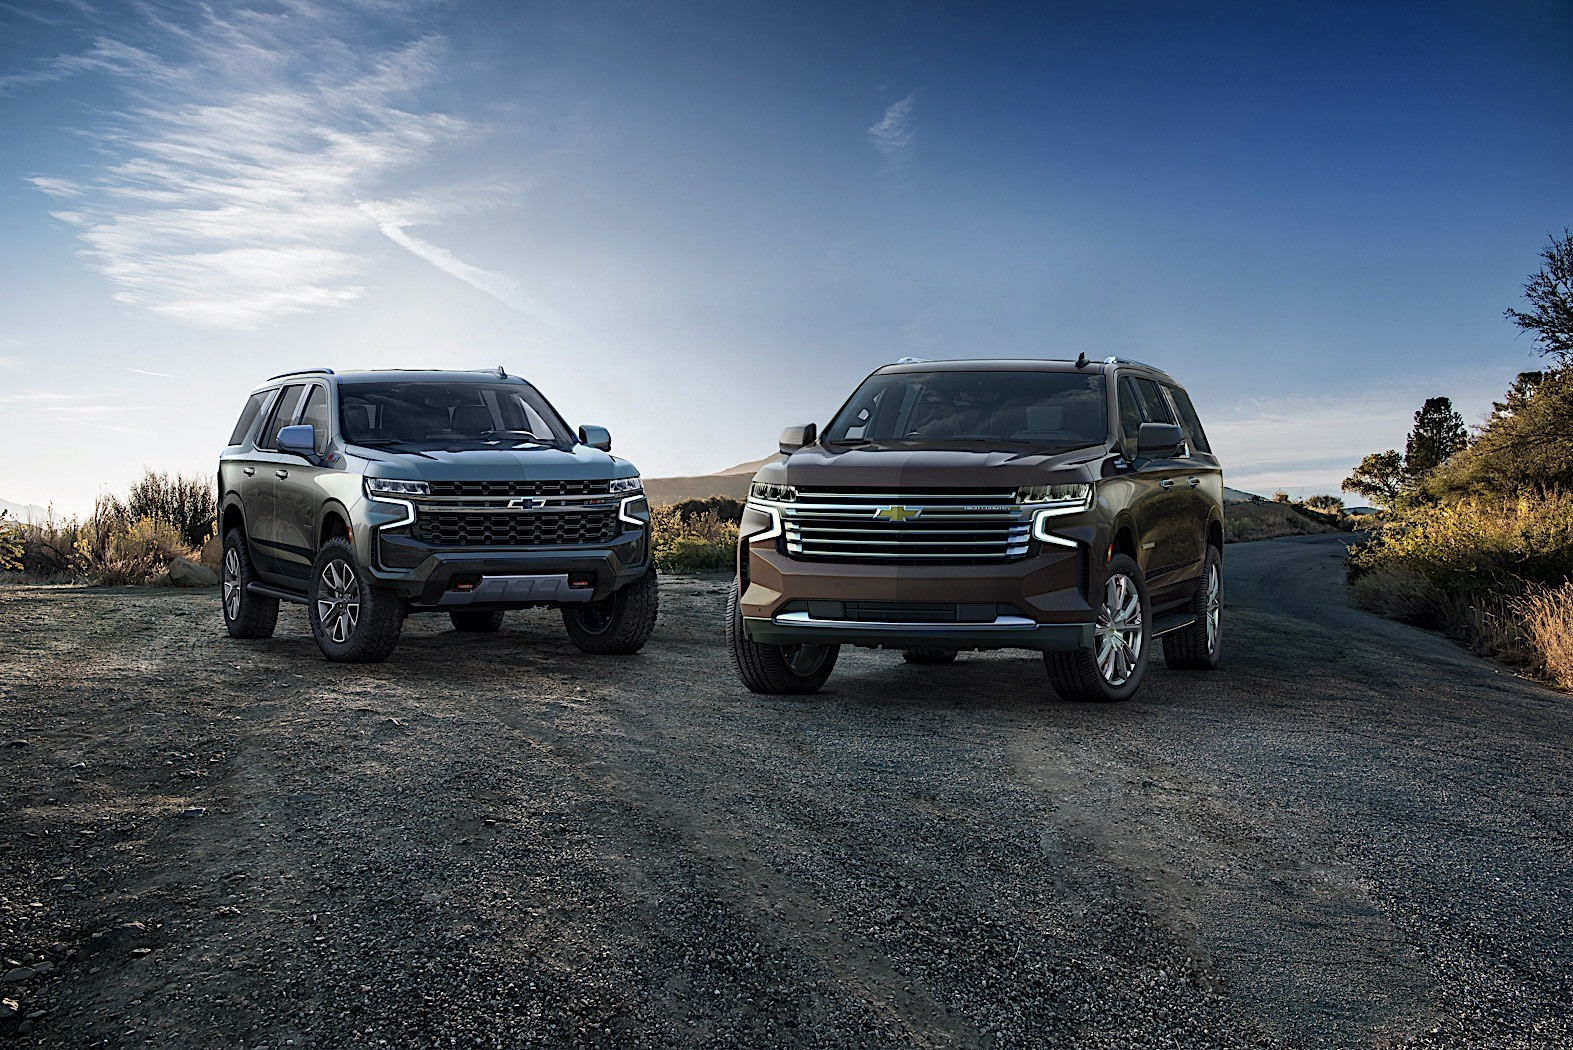 2021 chevrolet suburban costs 2700 more than the tahoe